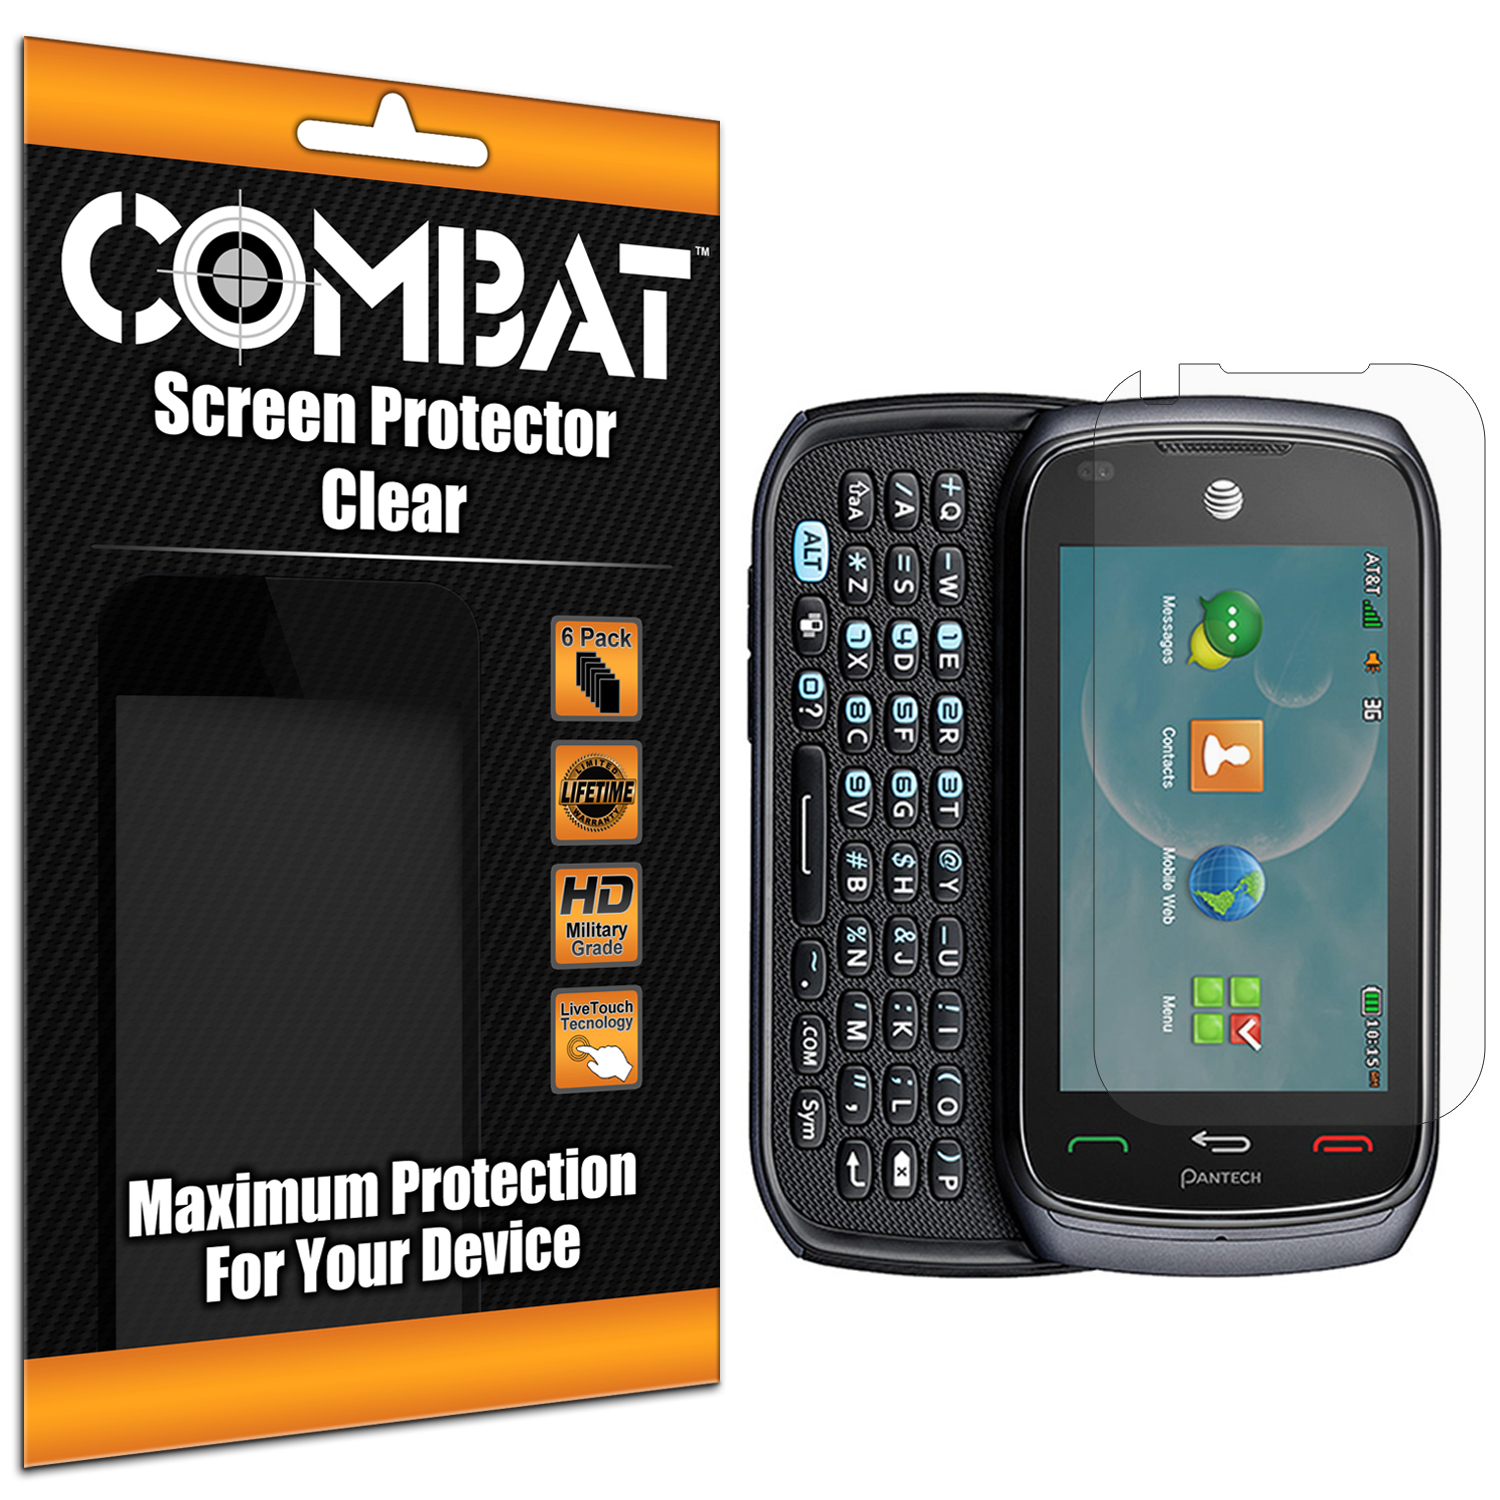 Pantech Vybe Combat 6 Pack HD Clear Screen Protector